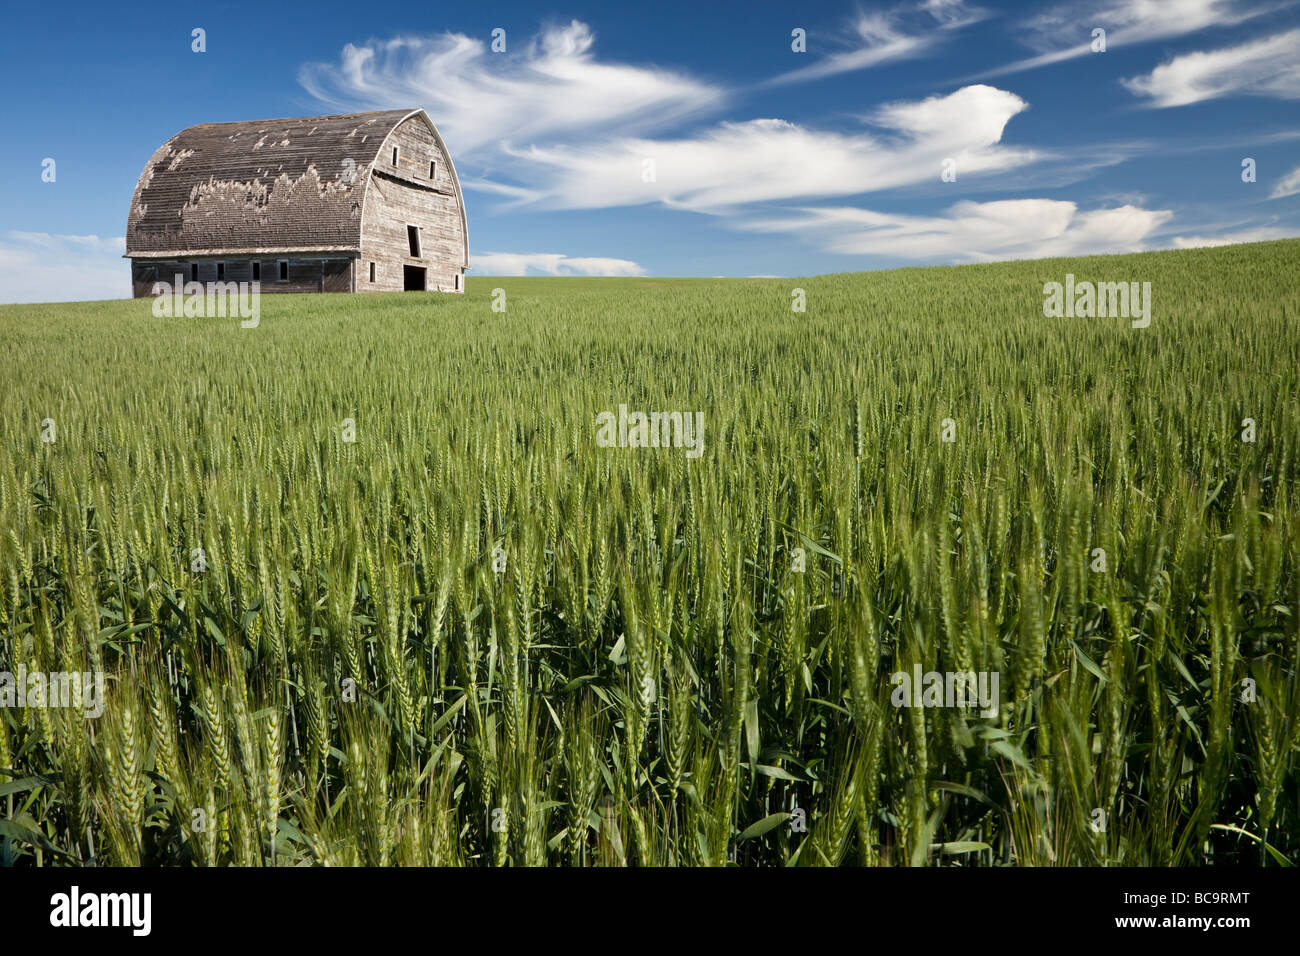 Whitman County, Palouse Country, Washington State. Old Barn in New Wheat Field. - Stock Image